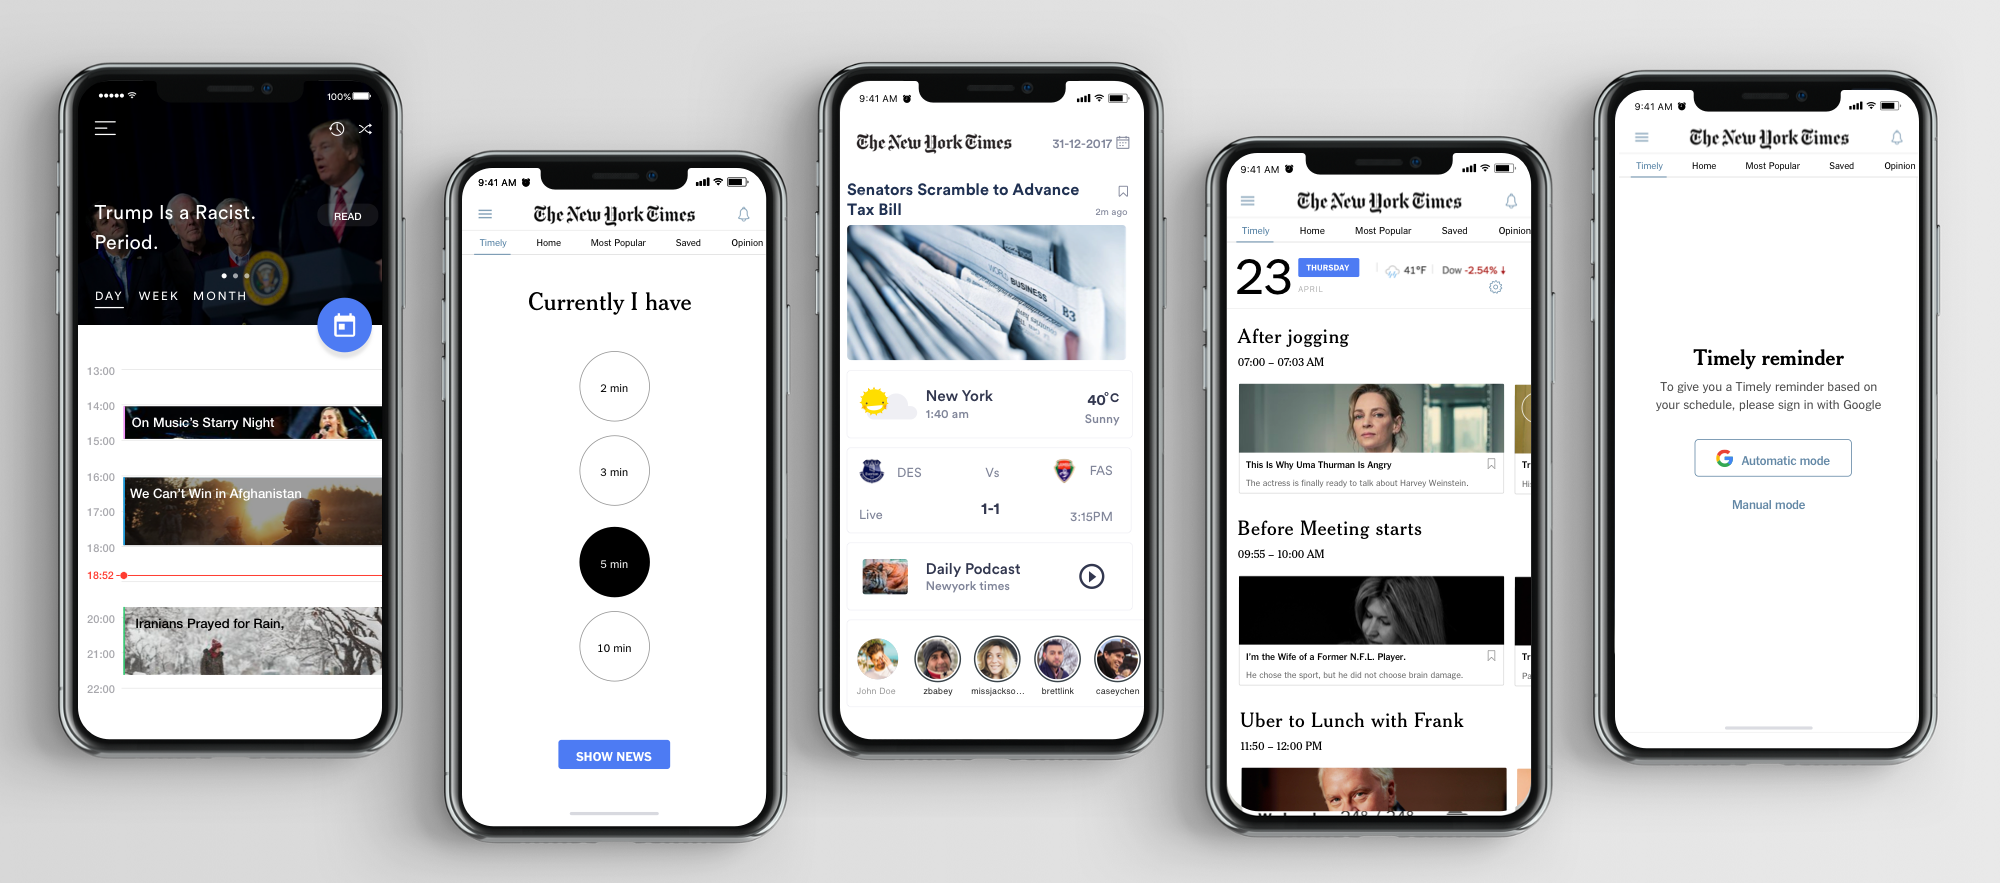 Redesigning the New York Times app — a UX case study